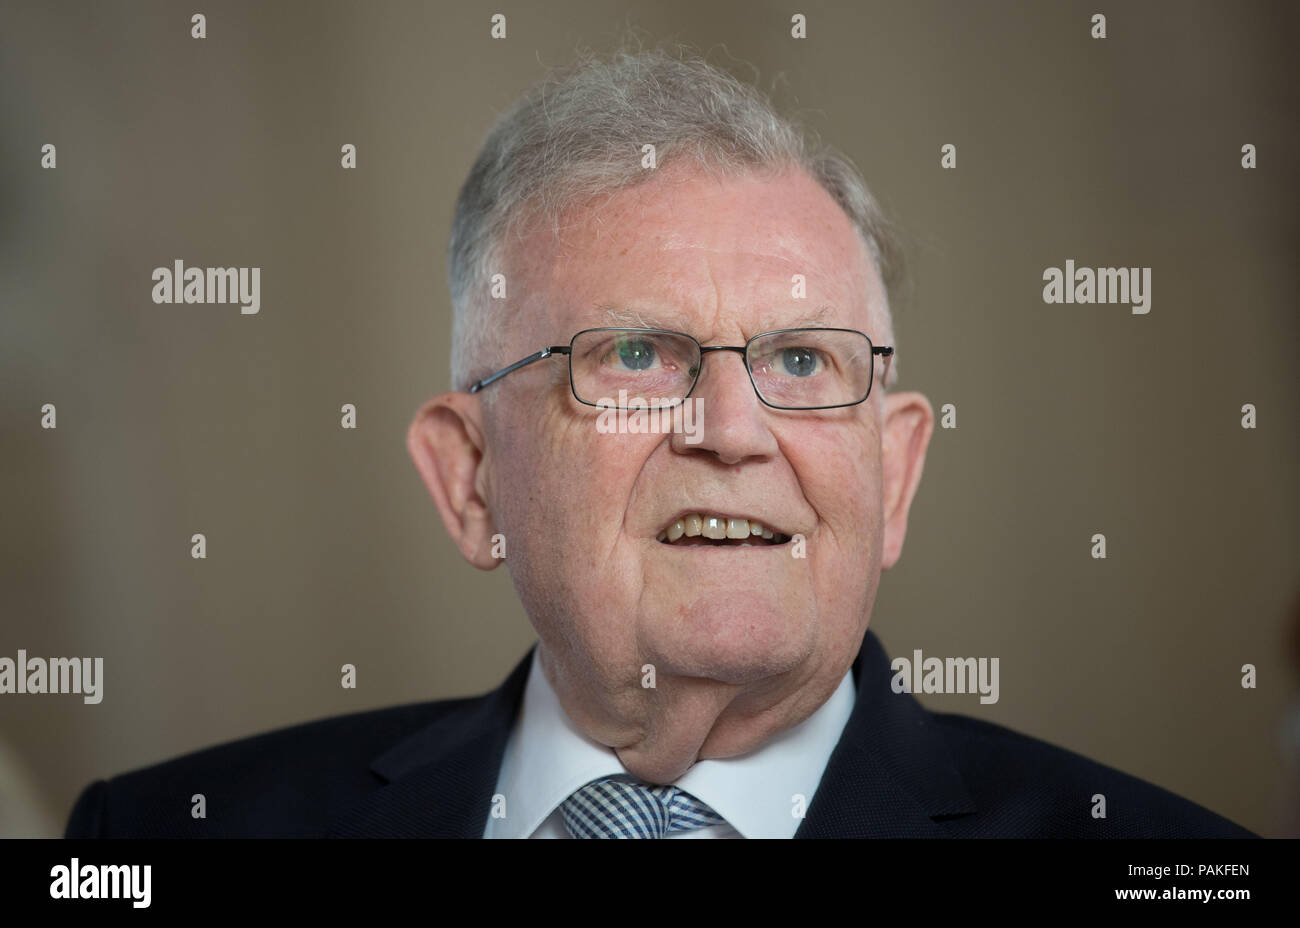 Stuttgart, Germany. 23rd July, 2018. Erwin Teufel, former Minister President of Baden-Württemberg, smiles at the handover ceremony of the office of President of the Constitutional Tribunal of Baden-Württemberg. Credit: Marijan Murat/dpa/Alamy Live News - Stock Image